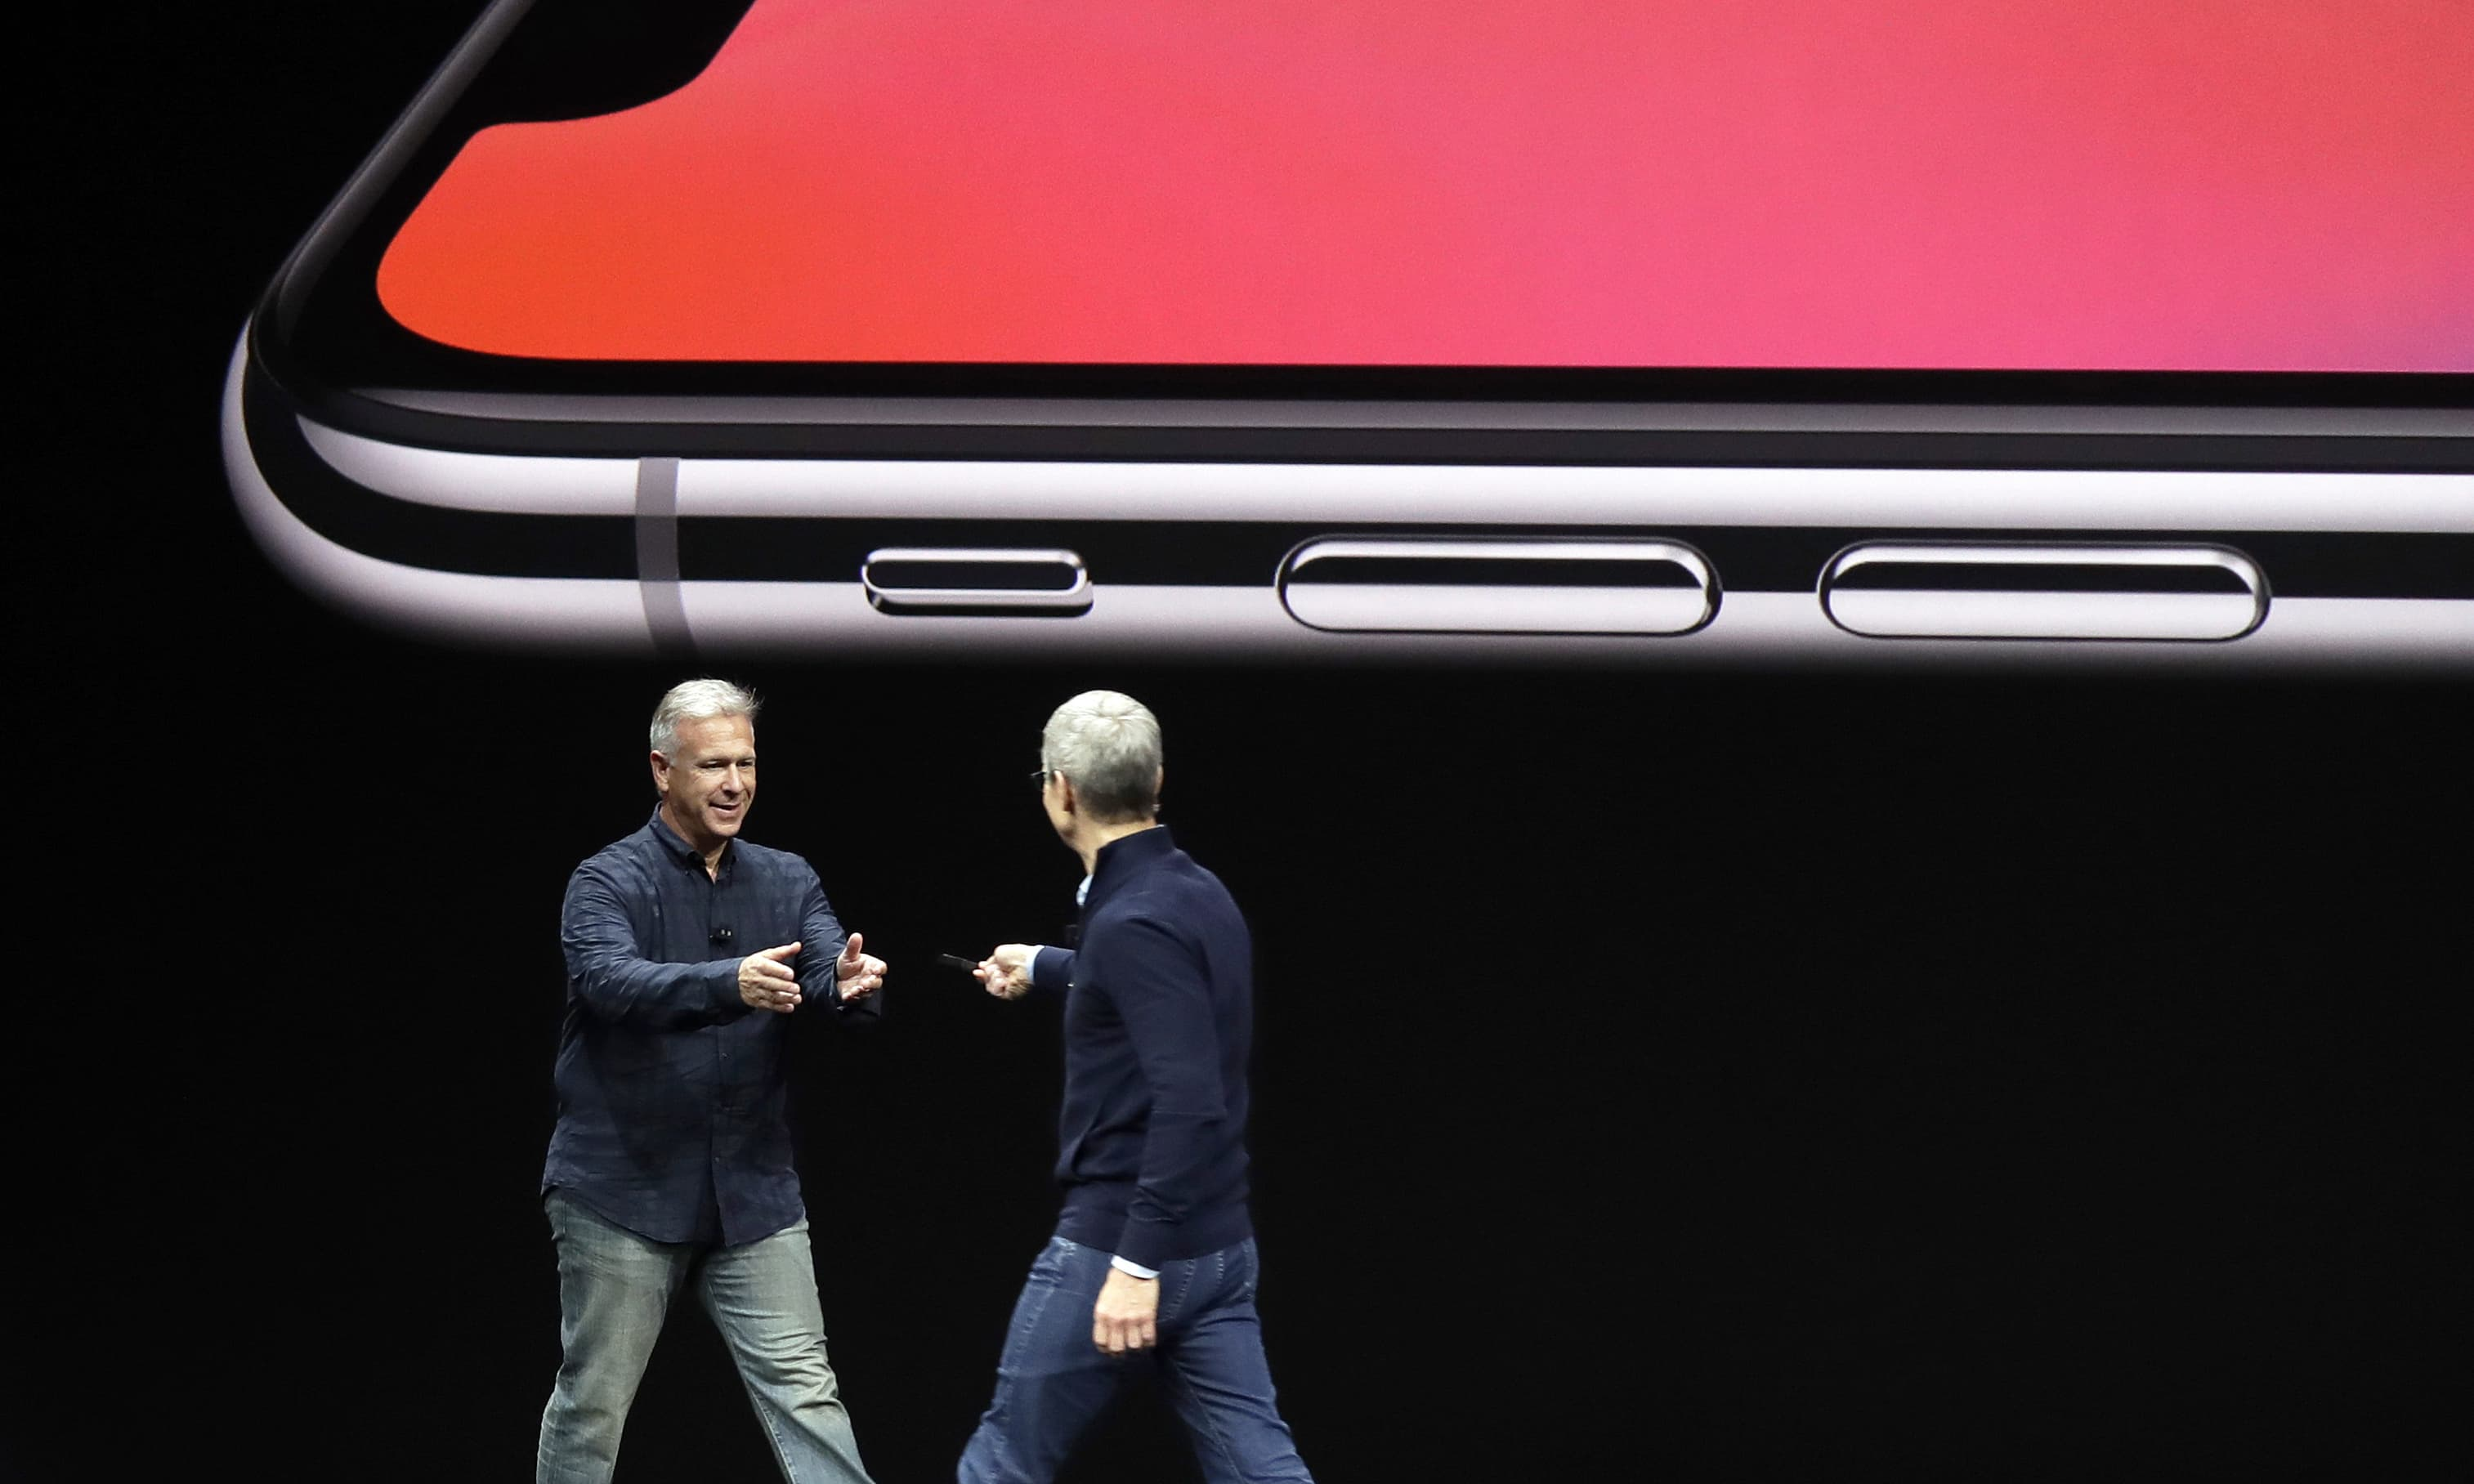 Phil Schiller, Apple's senior vice president of worldwide marketing, left, takes over from CEO Tim Cook as they discuss the features of the new iPhone X at the Steve Jobs Theater. —AP